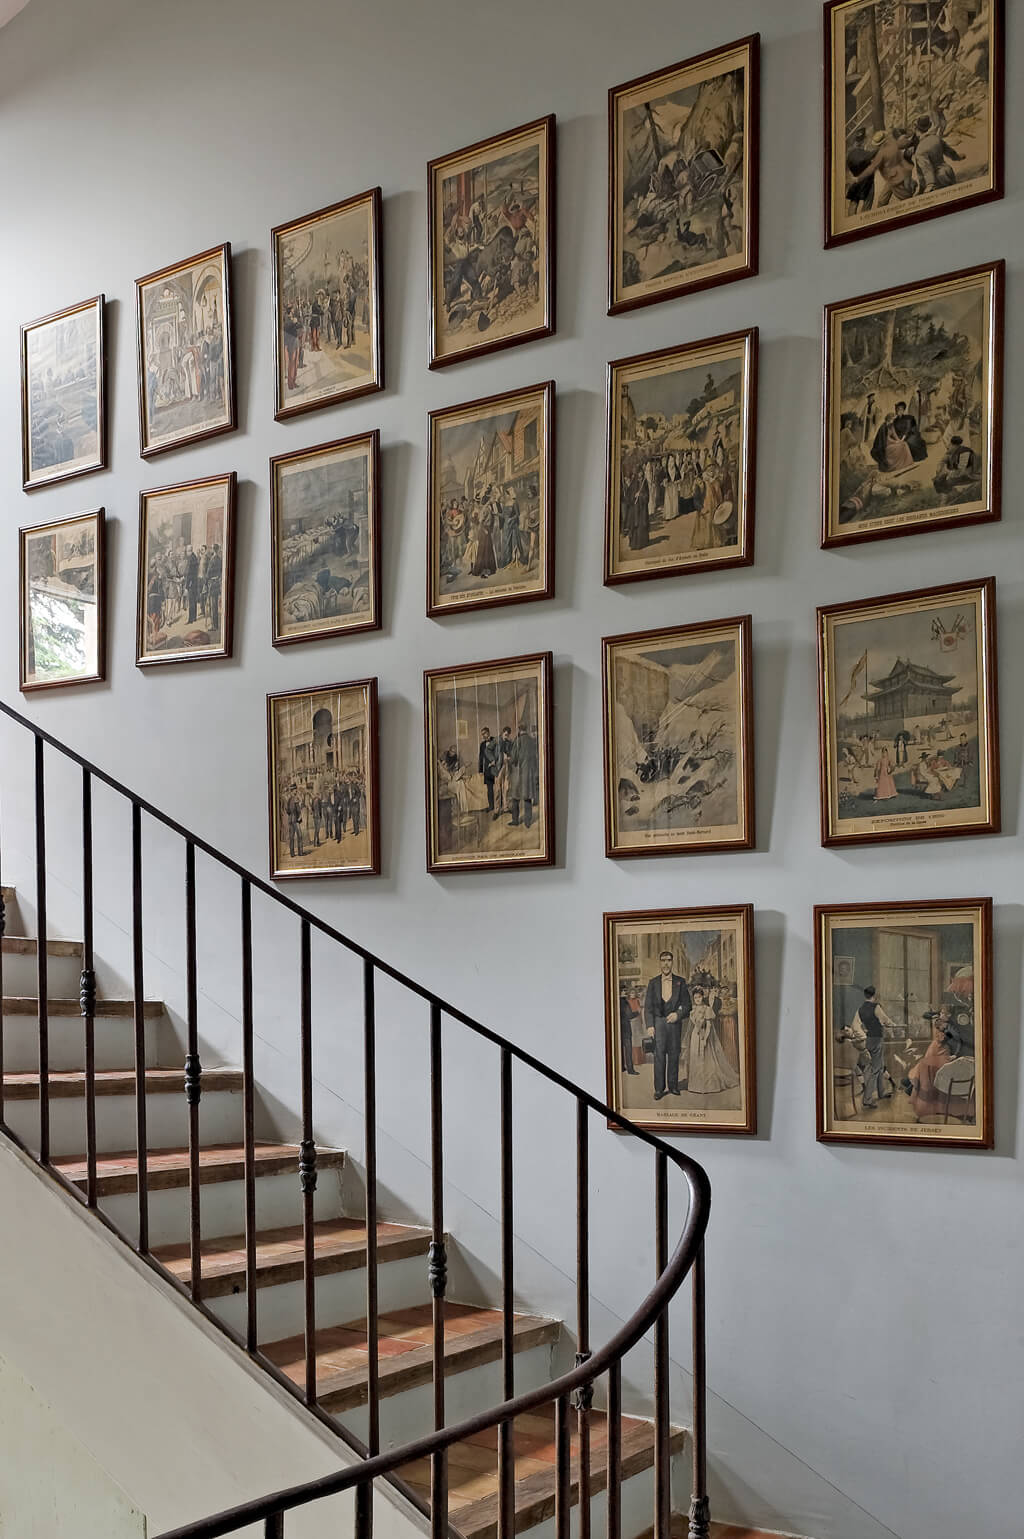 Provence country home with framed etchings massed on staircase wall. Haven In. Villa St-Saturnin. #havenin #provence #frenchcountry #interiordesign #staircase